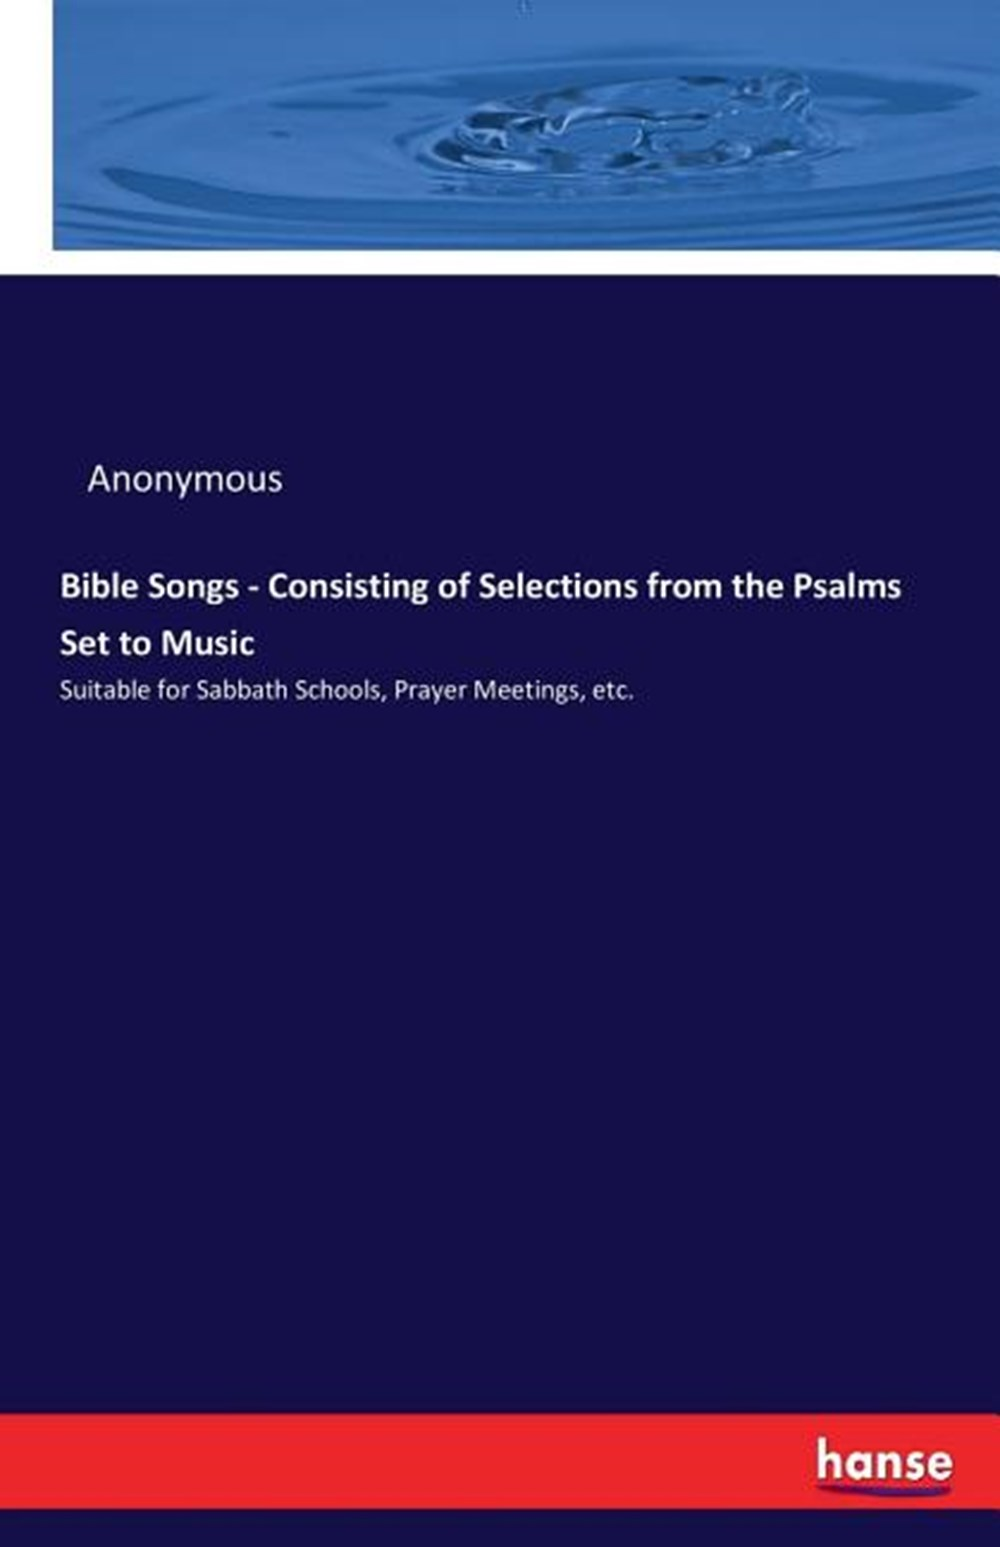 Bible Songs - Consisting of Selections from the Psalms Set to Music Suitable for Sabbath Schools, Pr